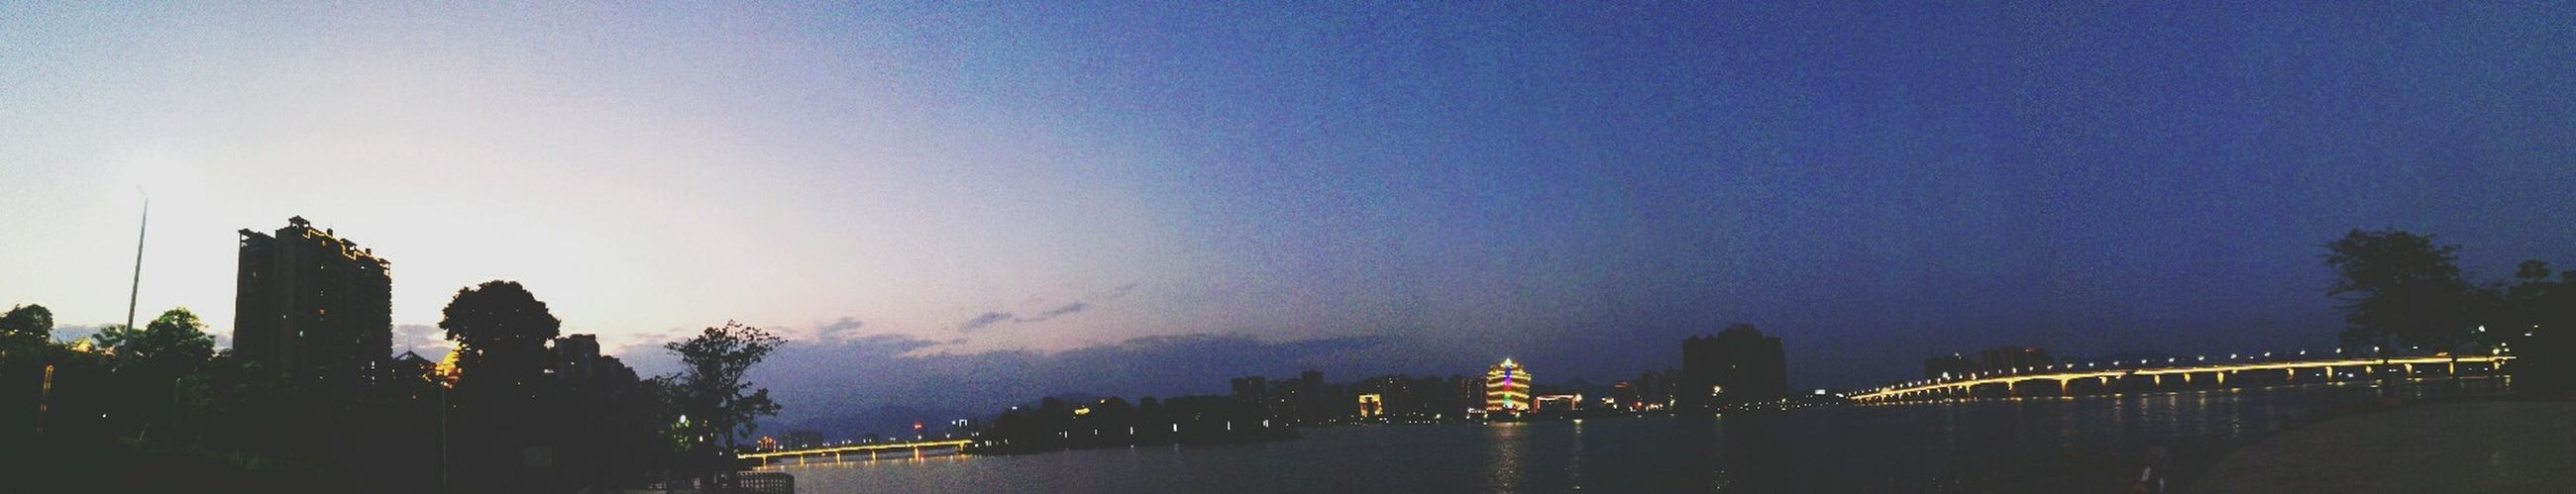 Outdoors Sky City Life River Dusk Built Structure City Water Connection Architecture Built Structure Bridge - Man Made Structure Connection Water Building Exterior River Illuminated Dusk City Panoramic Waterfront Travel Destinations Engineering Bridge City Life First Eyeem Photo